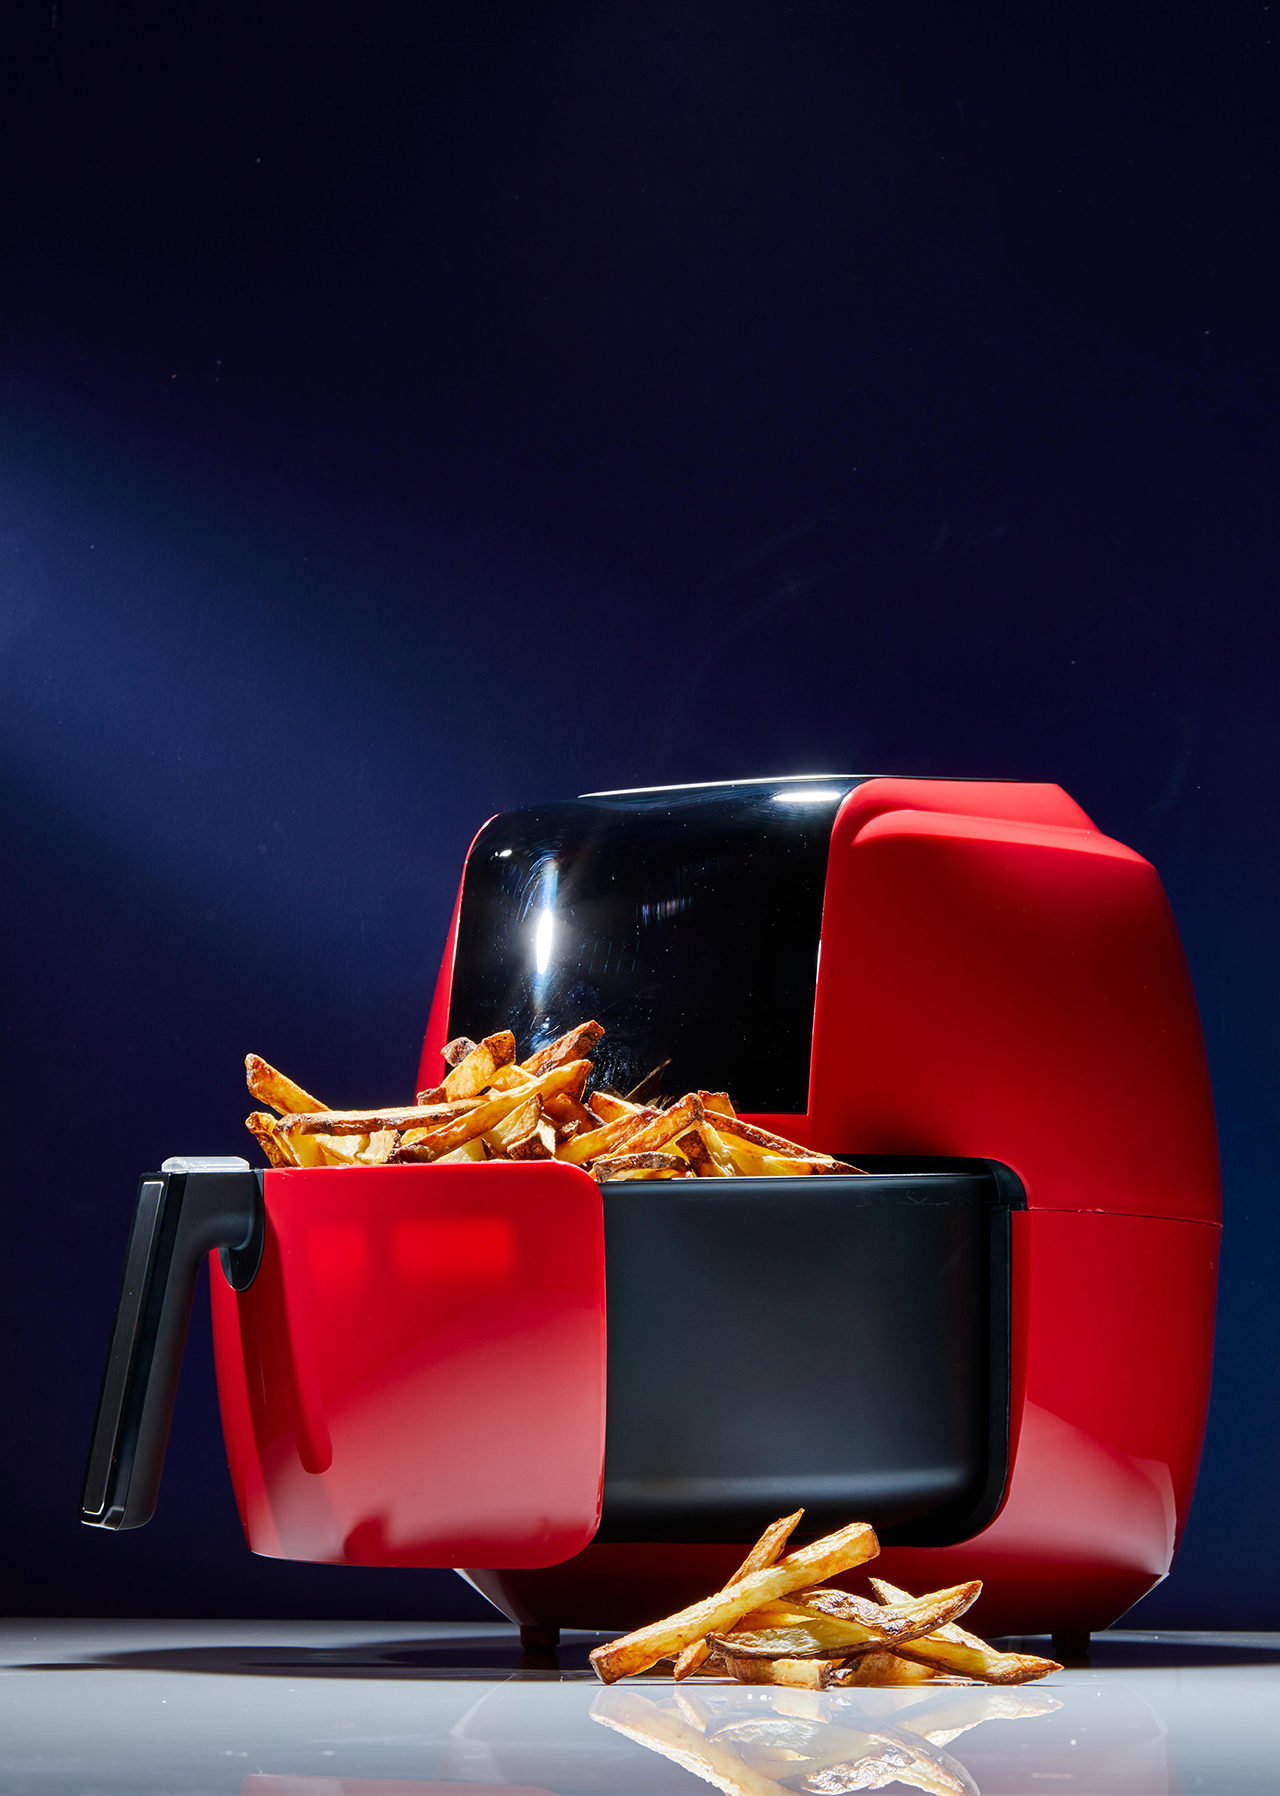 Red Digital Air Fryer with French Fries